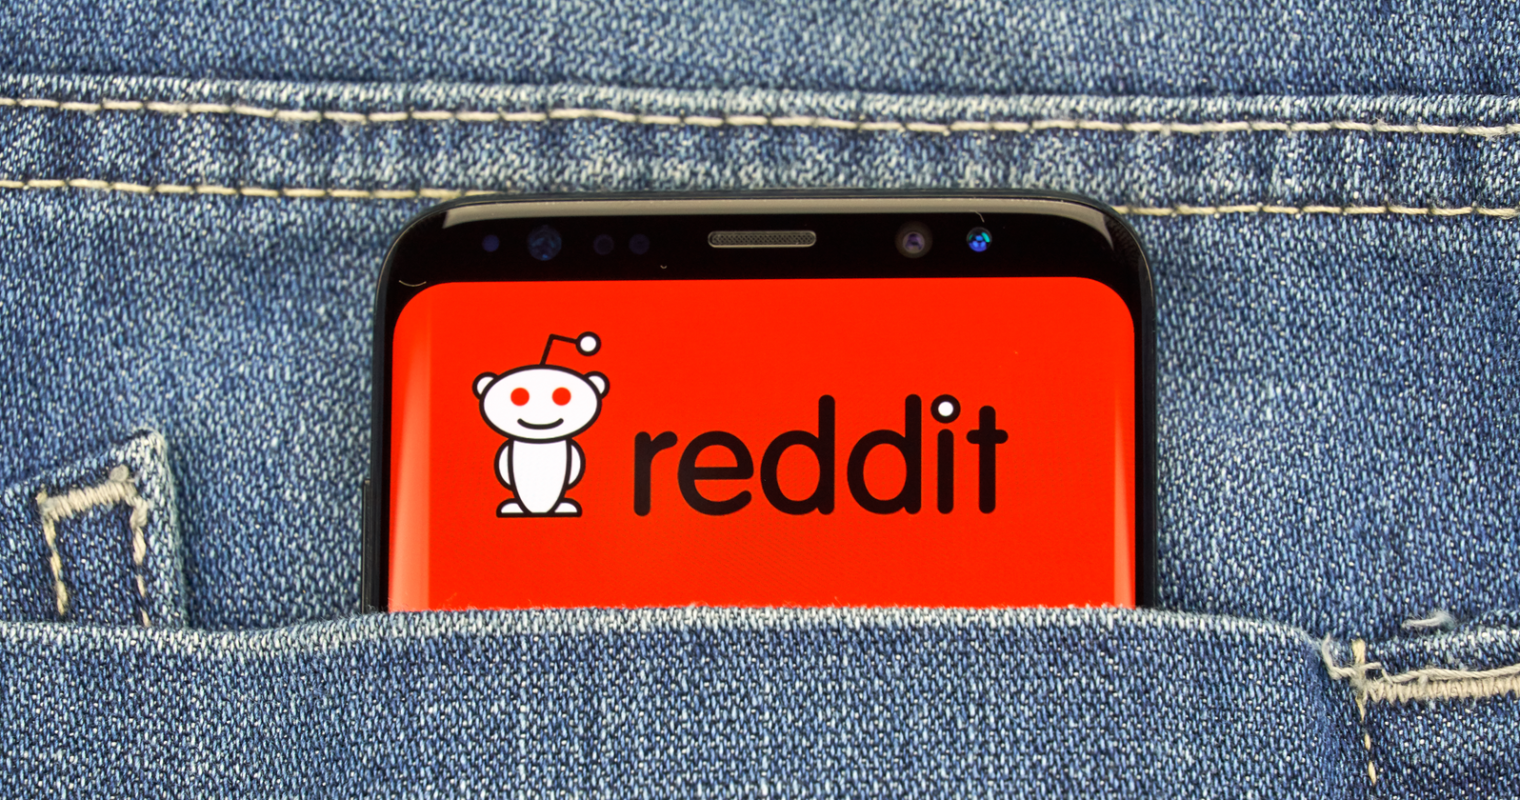 What the Most Viral Reddit Images Can Teach Marketers